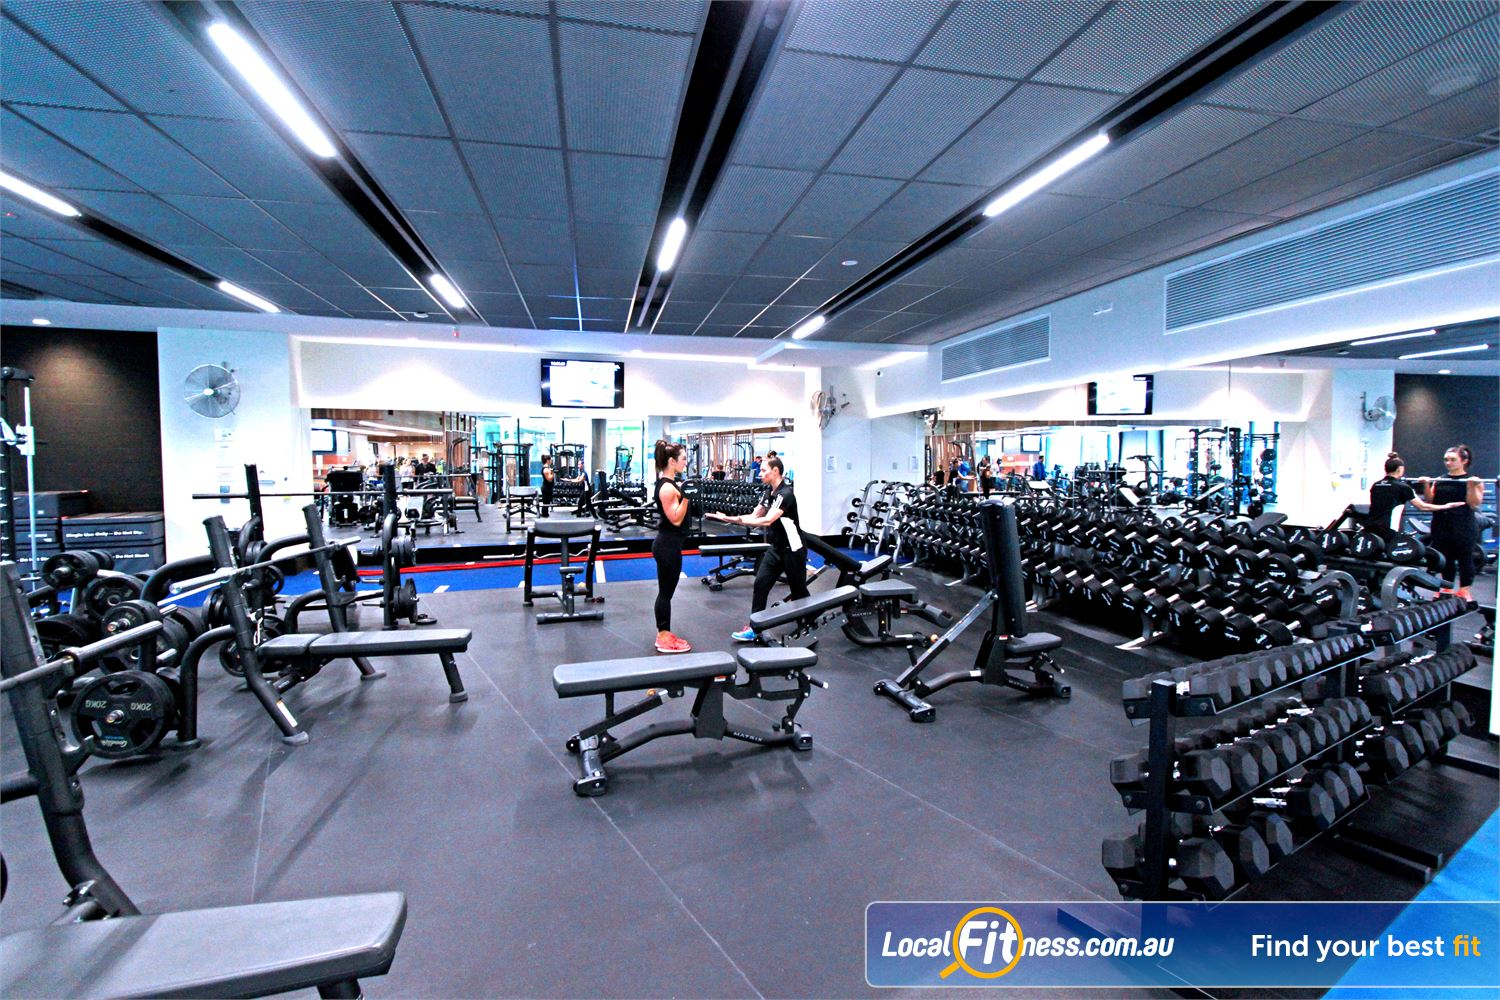 Goodlife Health Clubs Near North Melbourne The spacious free-weights area at Goodlife Dockalnds.